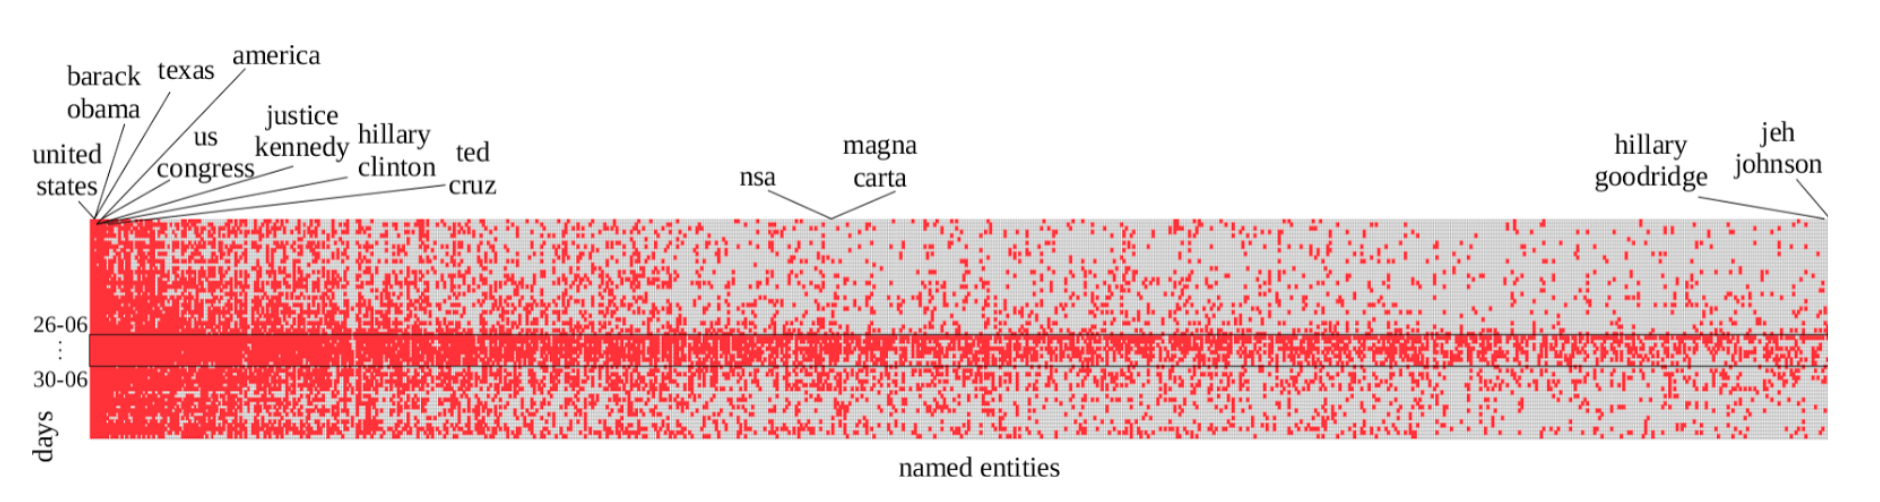 Fig 1:  Entities (columns) in the same-sex marriage news articles per day (row), ordered from the most to the least frequent. Entities that are frequently mentioned in the news articles are shown as red columns - a red box indicates presence. Days where all or the majority of entities are mentioned in news articles are shown as red rows.